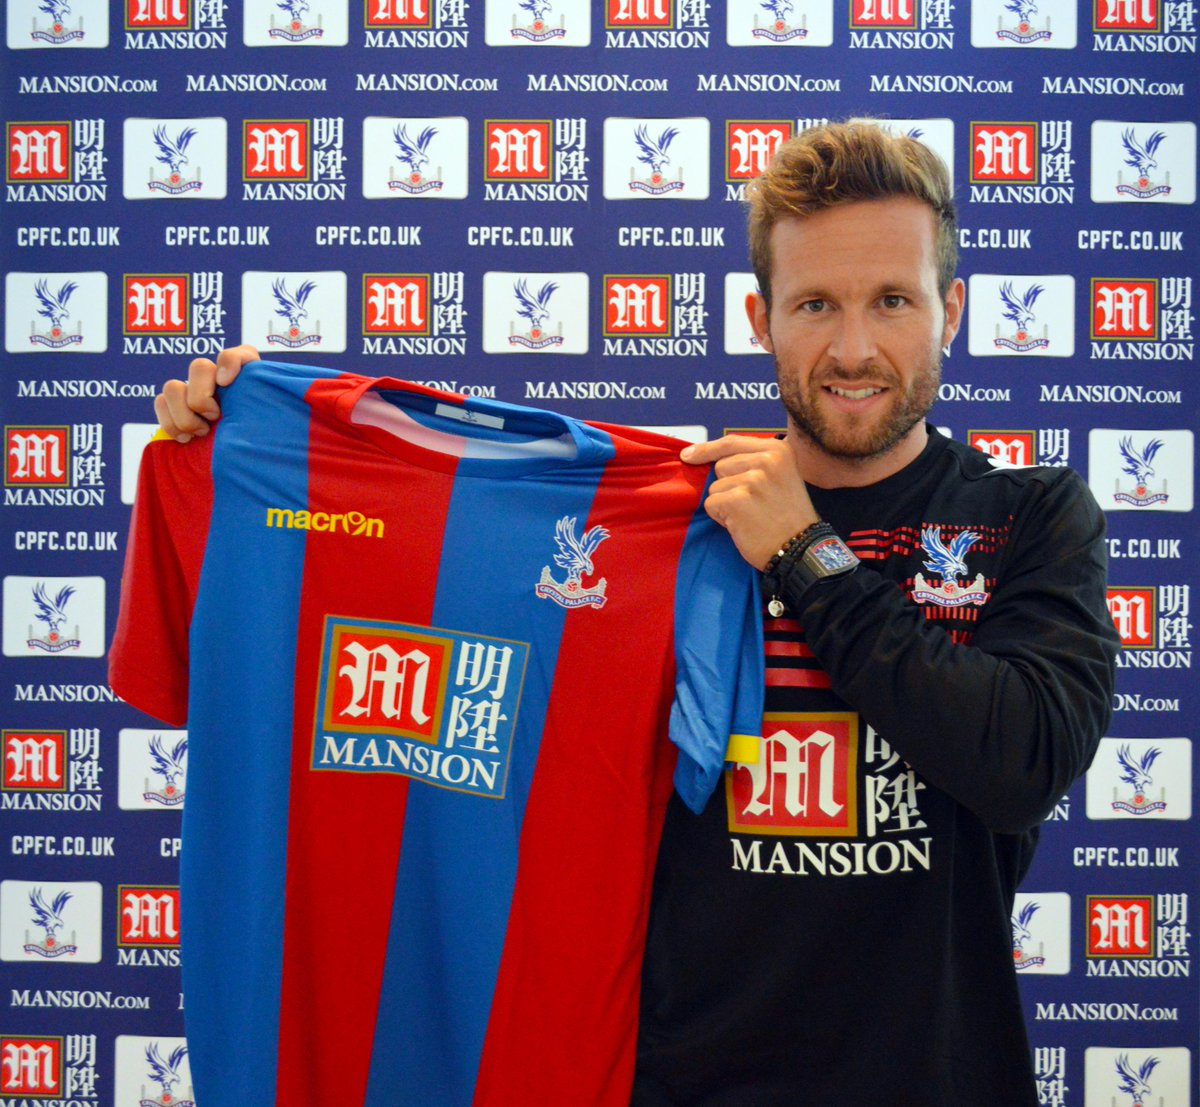 BREAKING: #CPFC are delighted to announce the signing of Yohan Cabaye on a three-year deal. #WelcomeCabaye http://t.co/R1petCwcbq